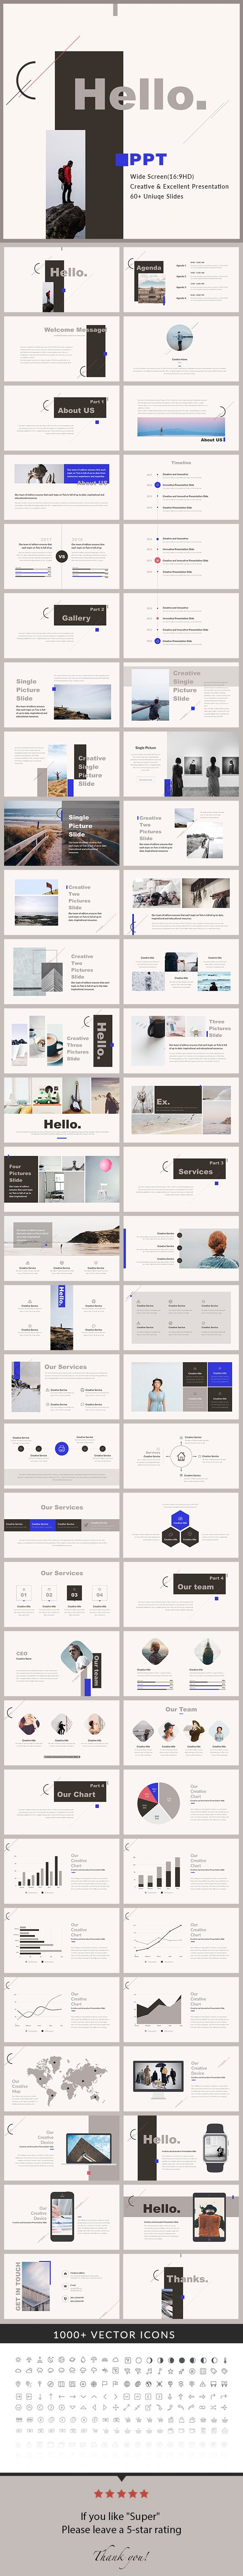 Hello - PowerPoint Presentation Template - Creative PowerPoint Templates